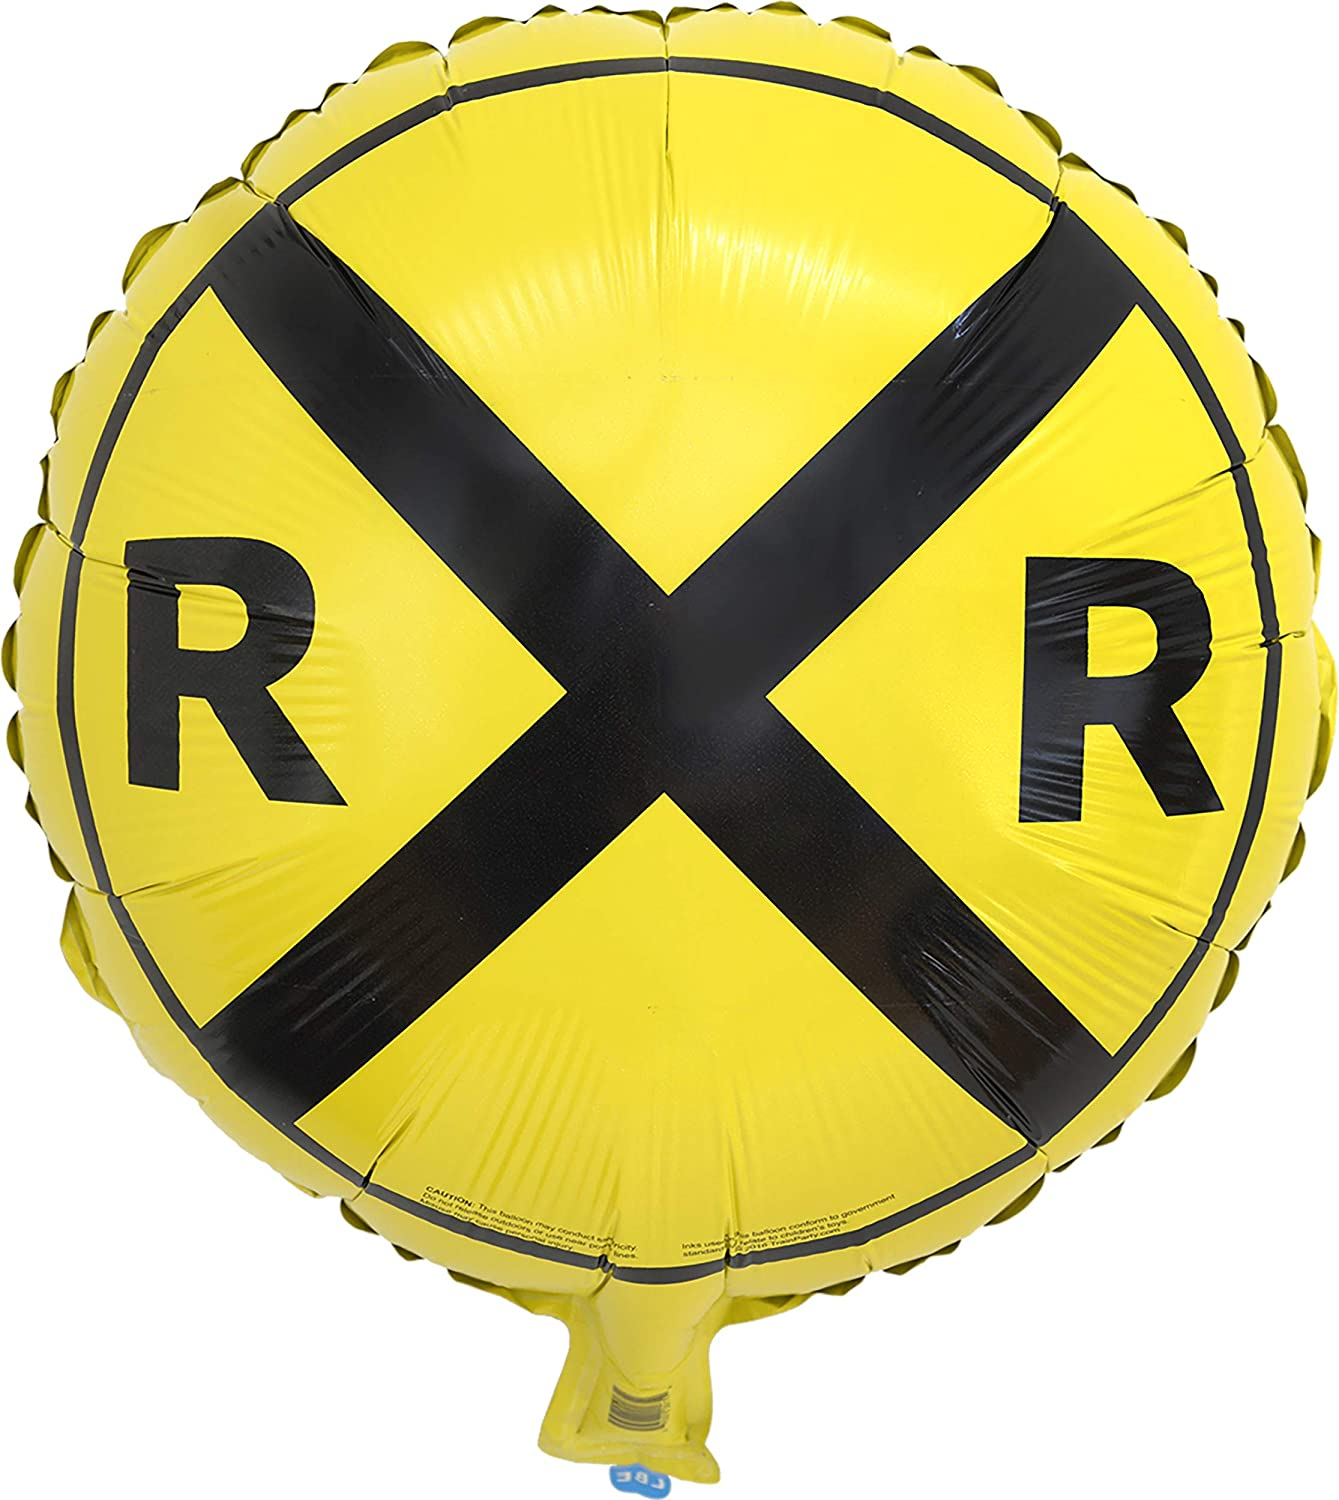 Havercamp Railroad Party Round Mylar Balloon | 1 Count | Great for Train Themed Events, Kid's Birthday Party, Train Collectors' Gathering, Retirement Party, Father's Day, Graduation Party